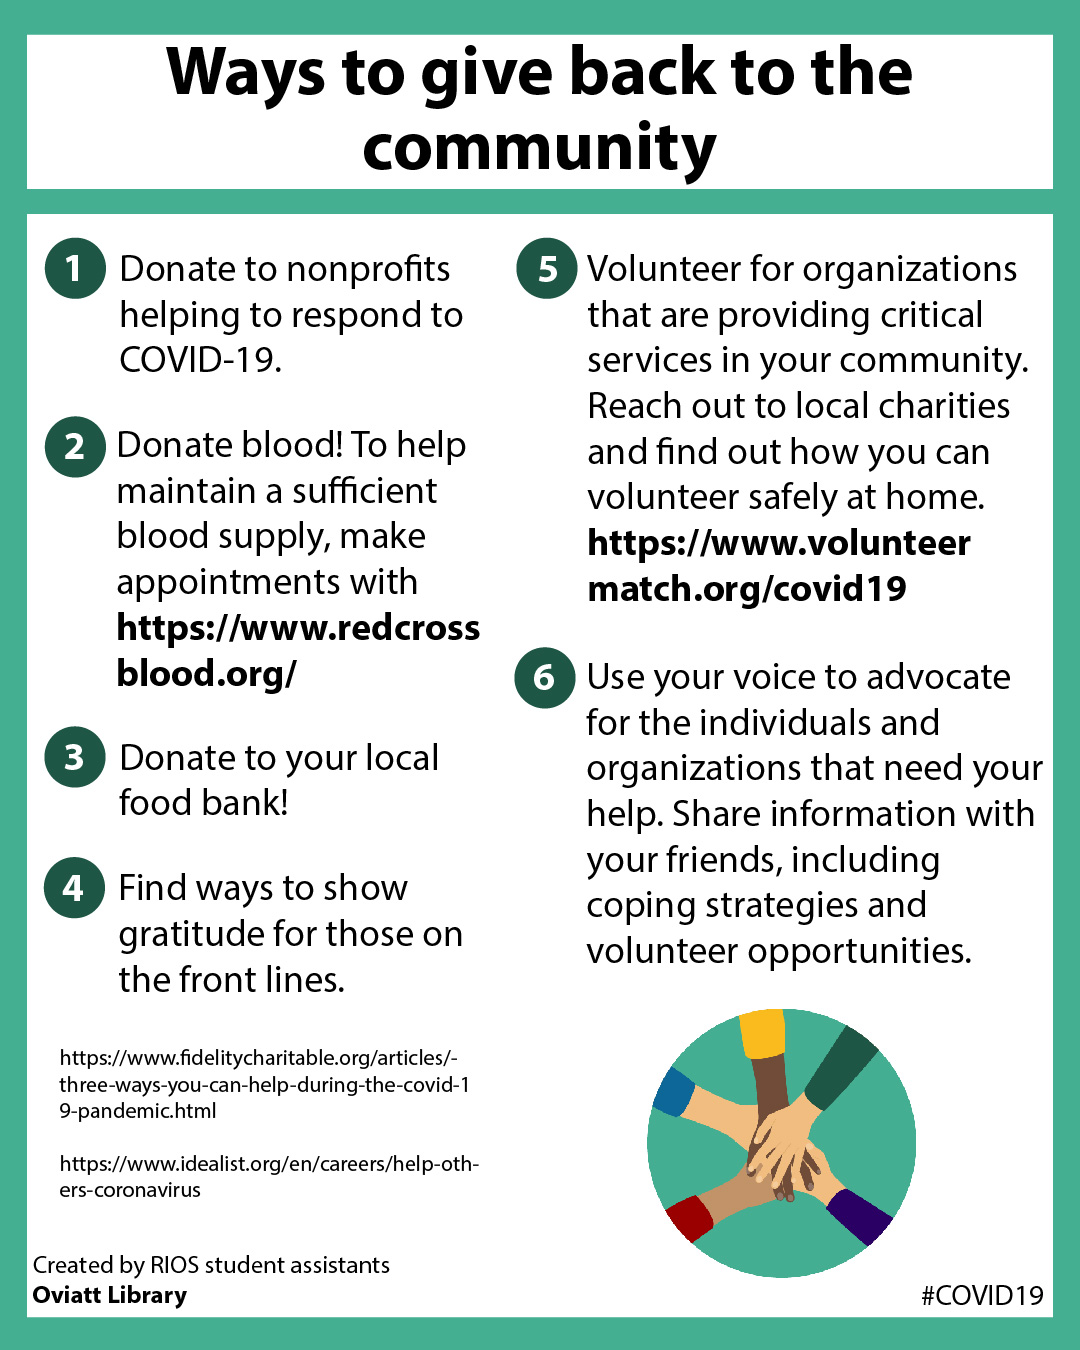 Ways to Give Back to the Community